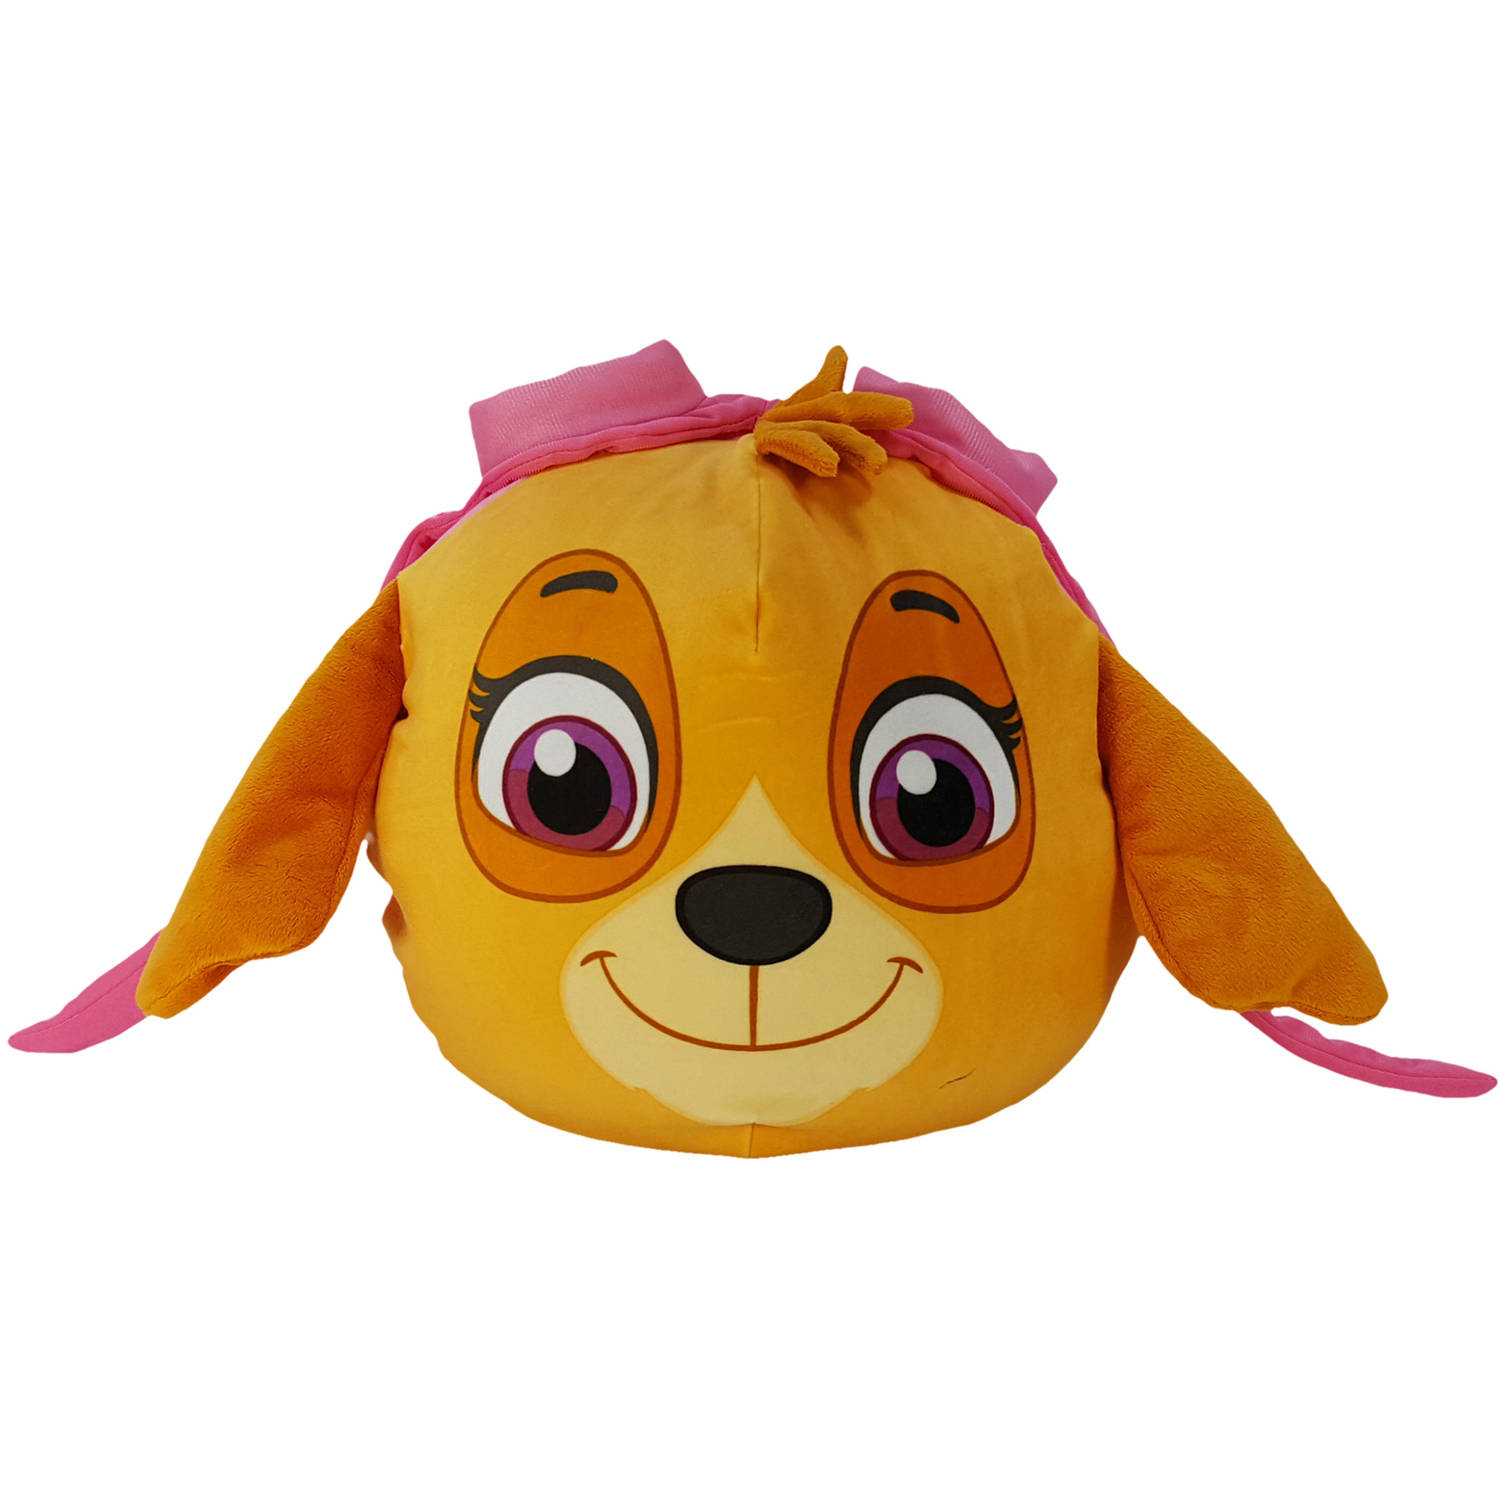 "The Northwest Company Paw Patrol Skye 3D Ultra-Stretch Travel Cloud Pillow, 11"" x 11"""